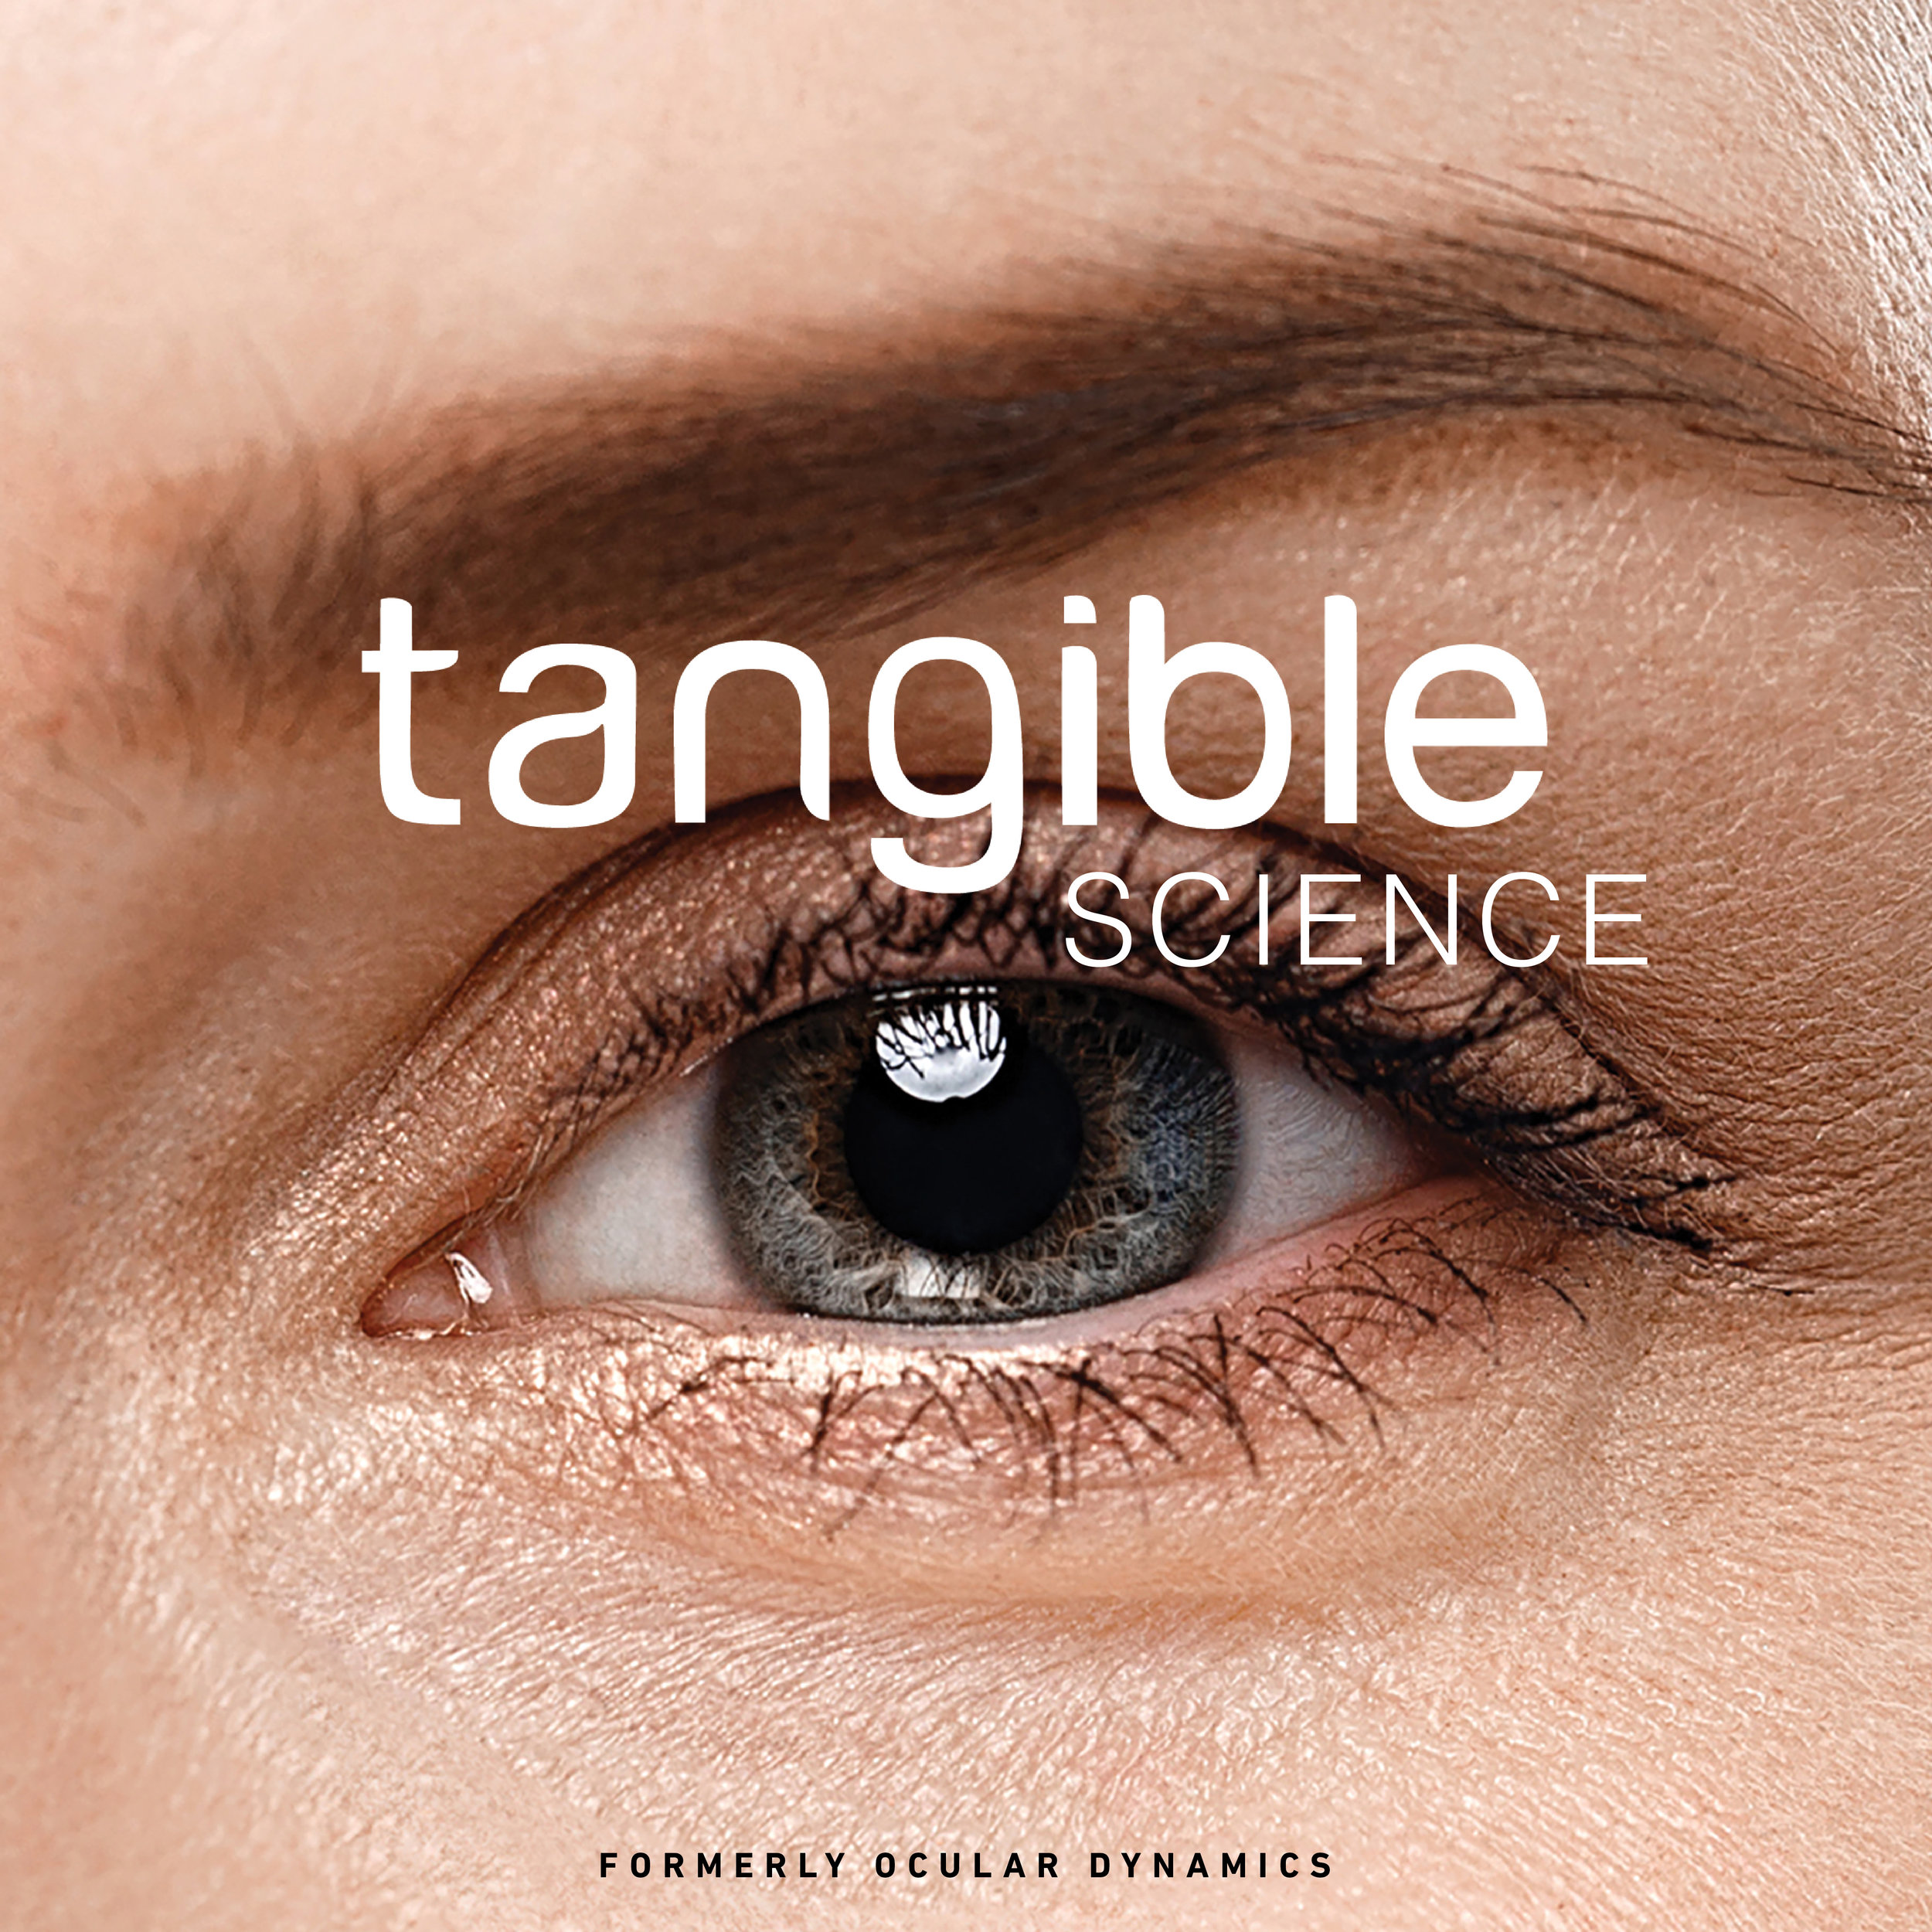 Tangible Science